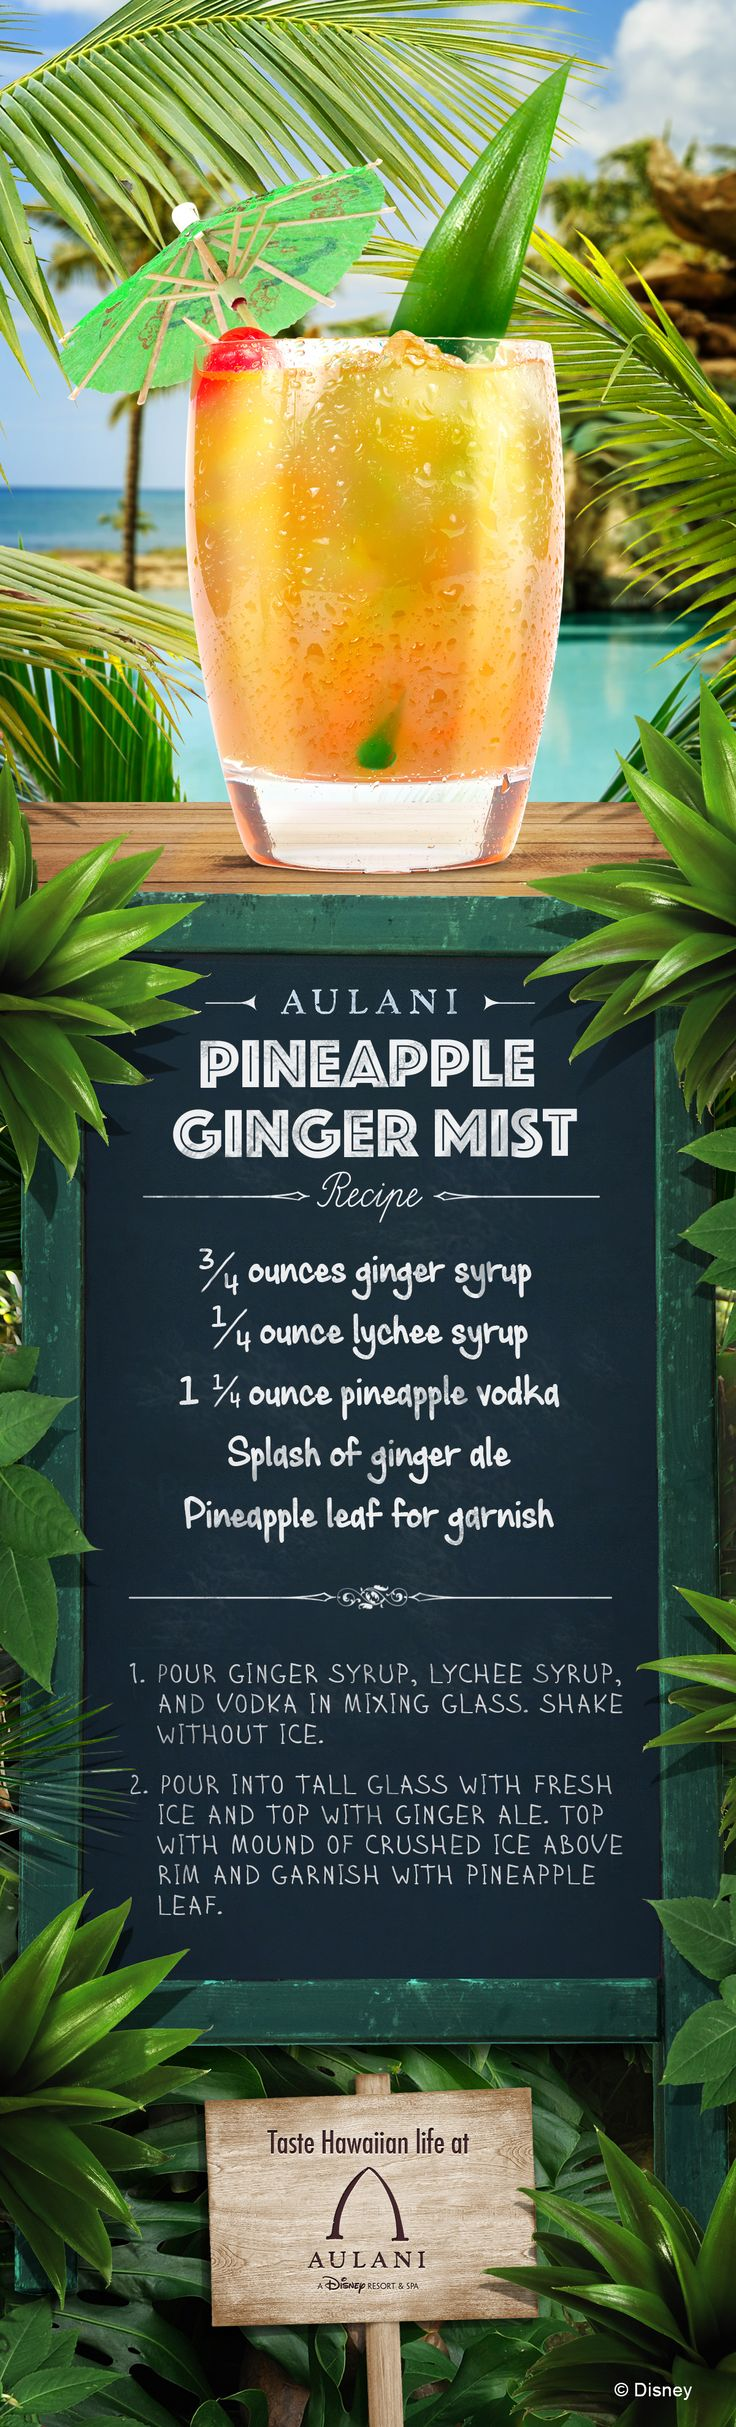 Enjoy a refreshing taste of Hawaii and bring the flavors of Aulani to your home with this Pineapple Ginger Mist drink recipe!